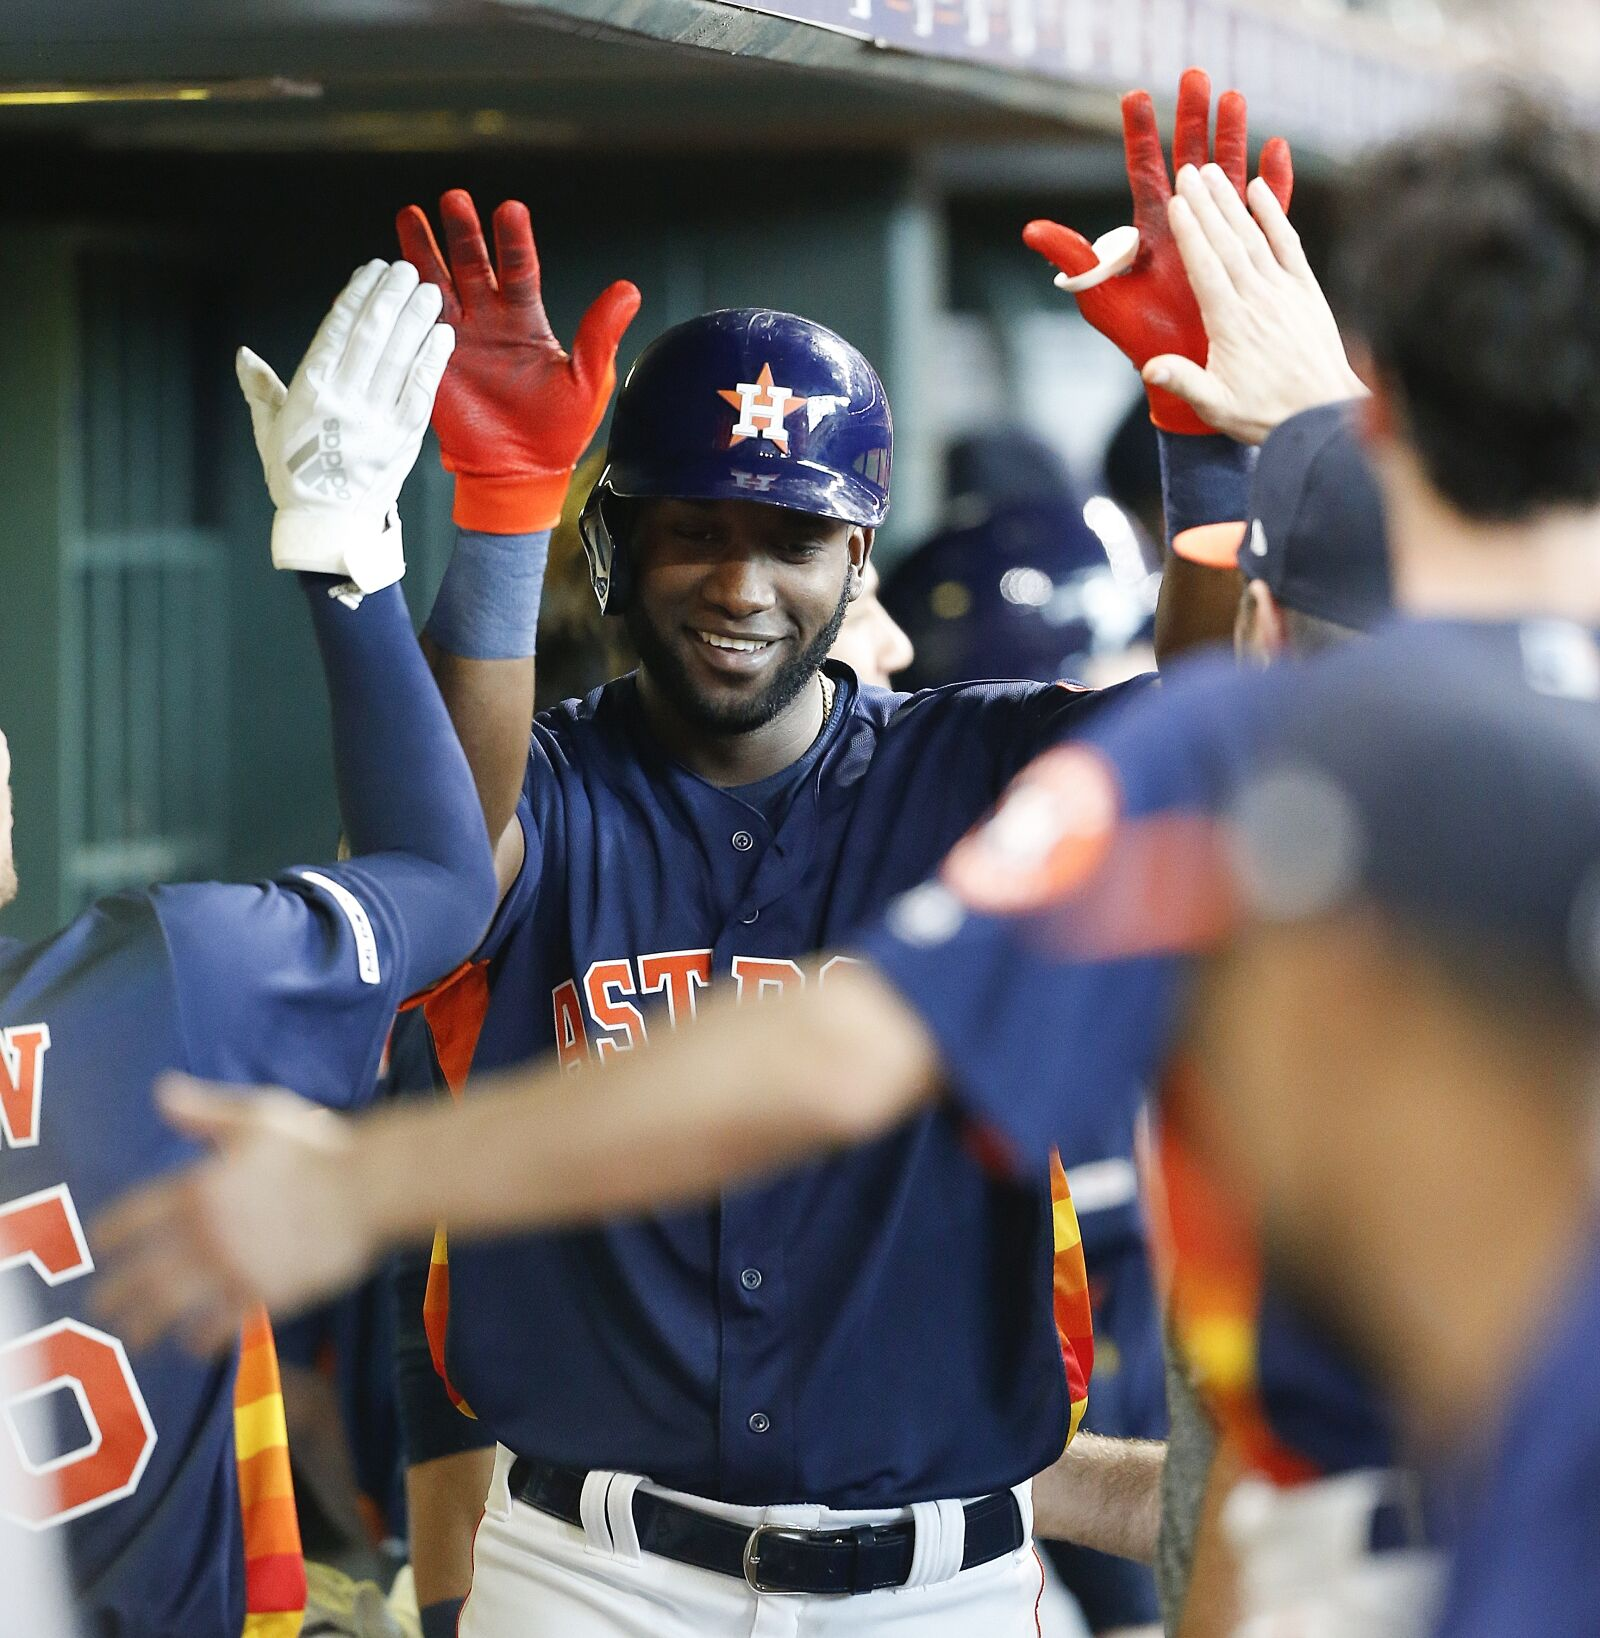 Astros: It's just a slump, relax, they shall overcome